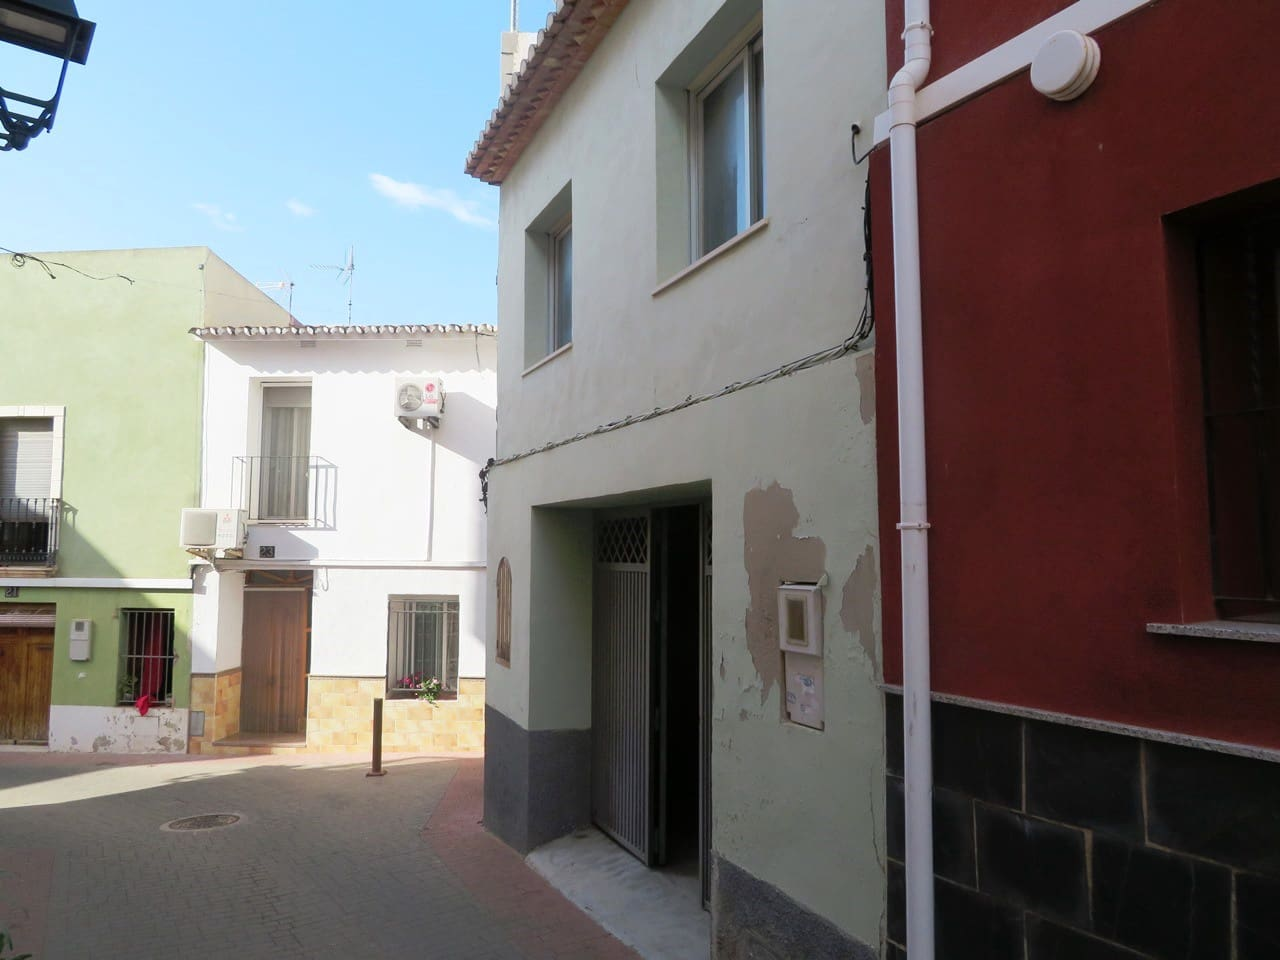 Townhouse for sale in Ondara - € 59,000 (Ref: 6327524)